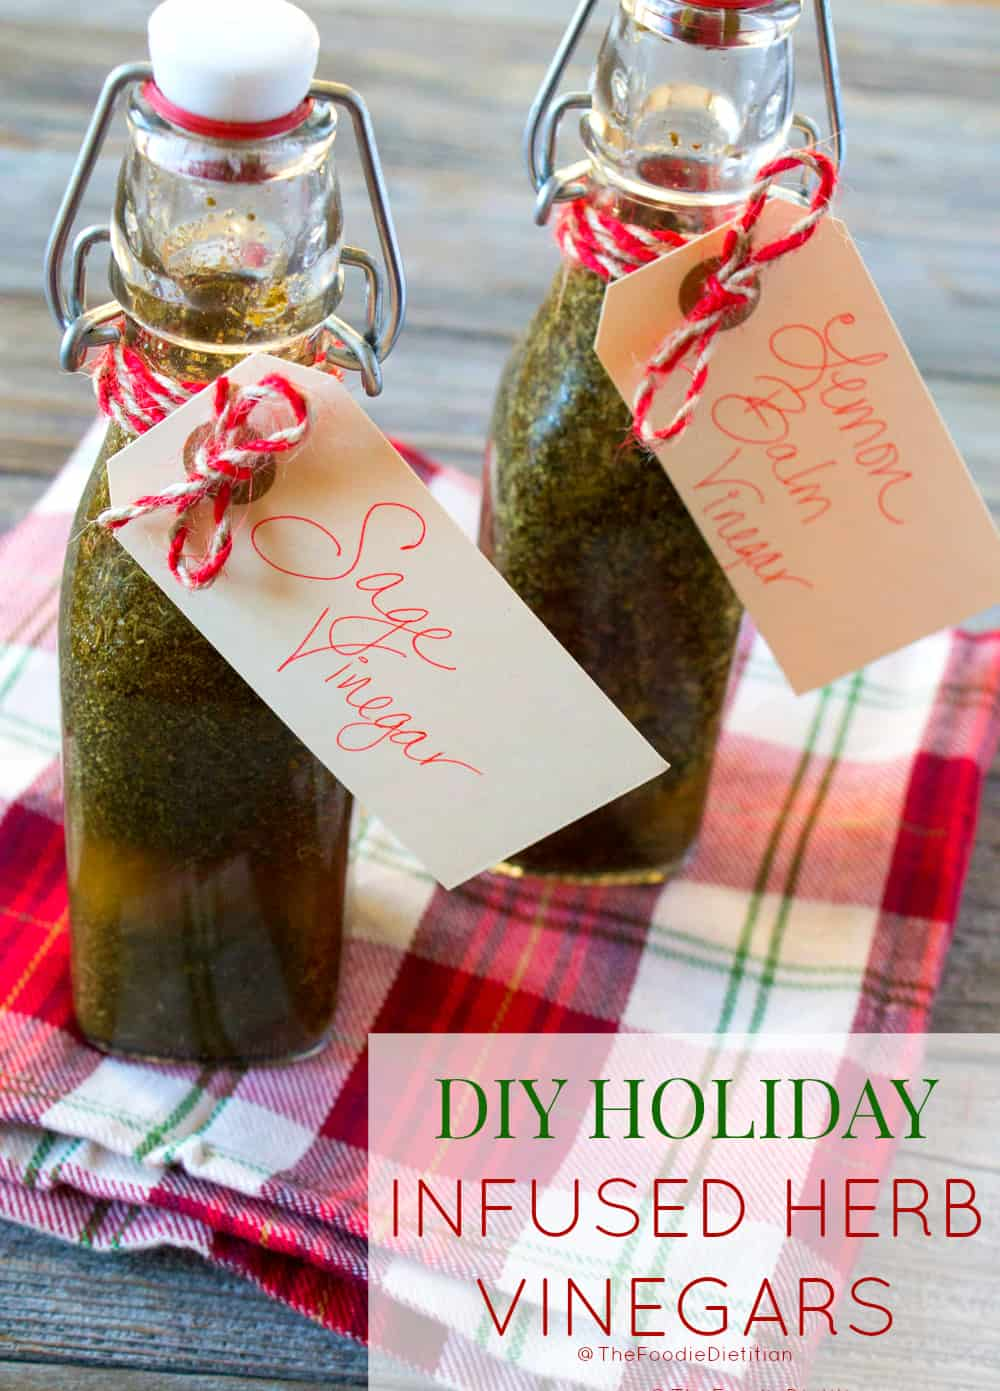 Fit for a holiday DIY gift, these herb infused vinegars make delicious salad dressings and are perfect for helping build up the immune system during the winter months. Oh, and they take about 3 minutes to make! | @TheFoodieDietitian